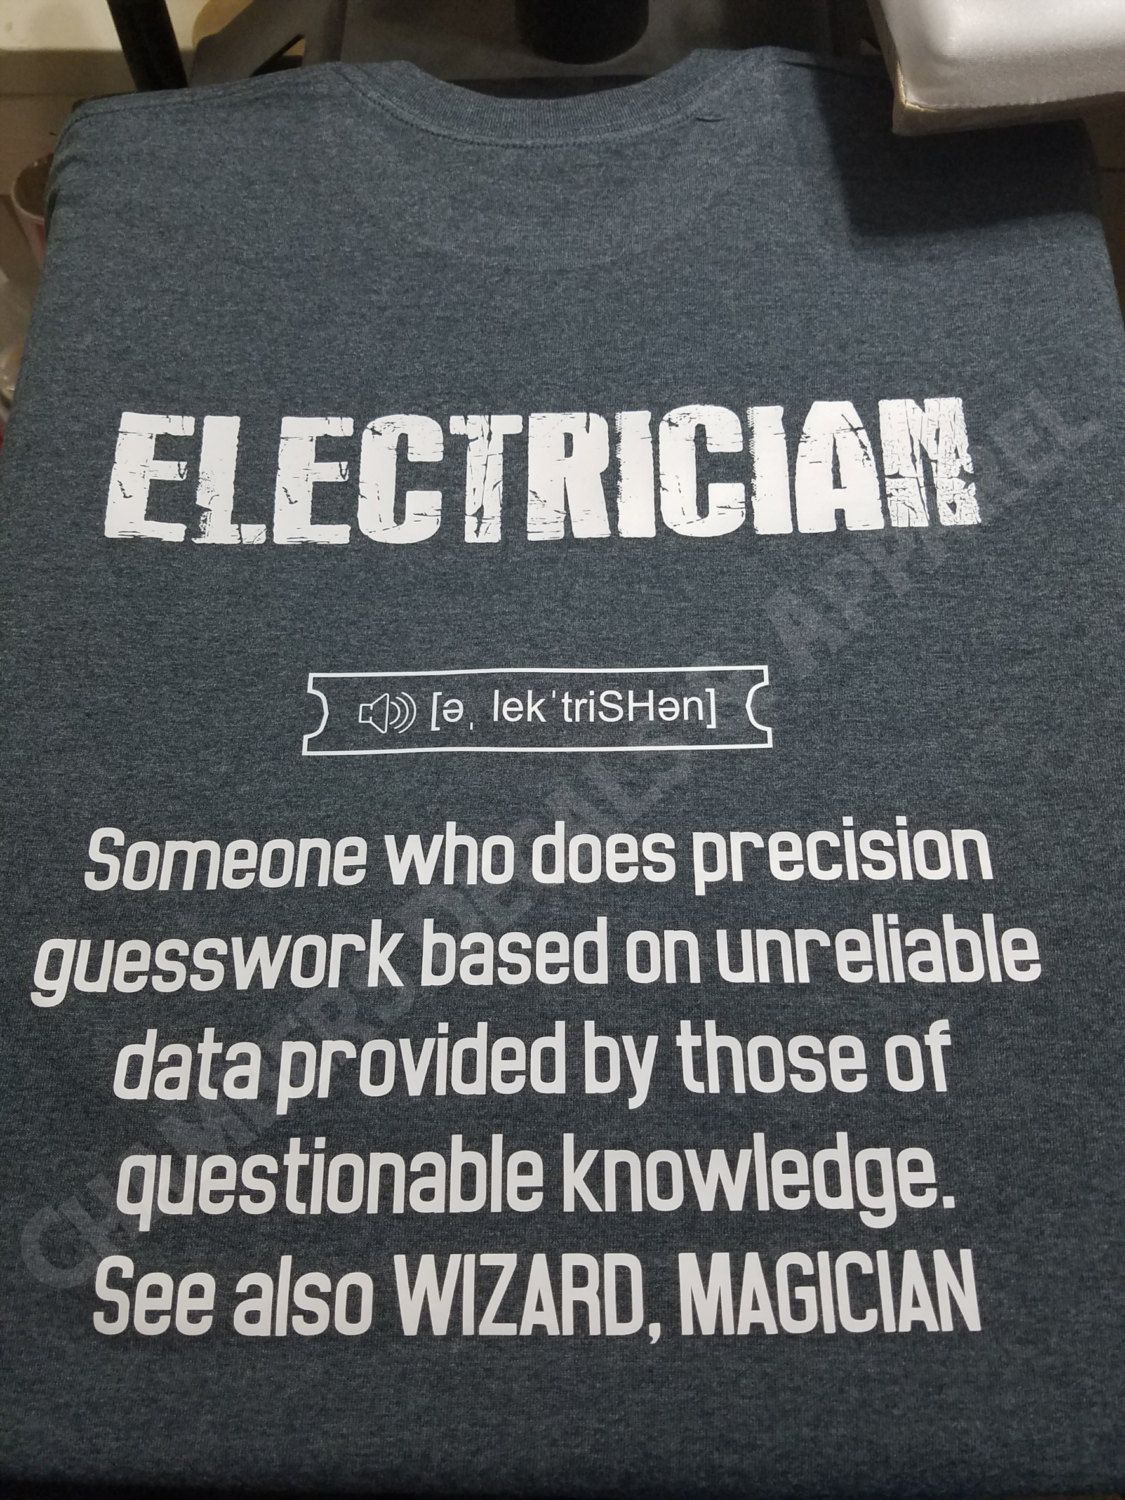 Electrician Quotes Mesmerizing Would Make A Great Christmas Gift For An Electrician With A Sense Of . Inspiration Design